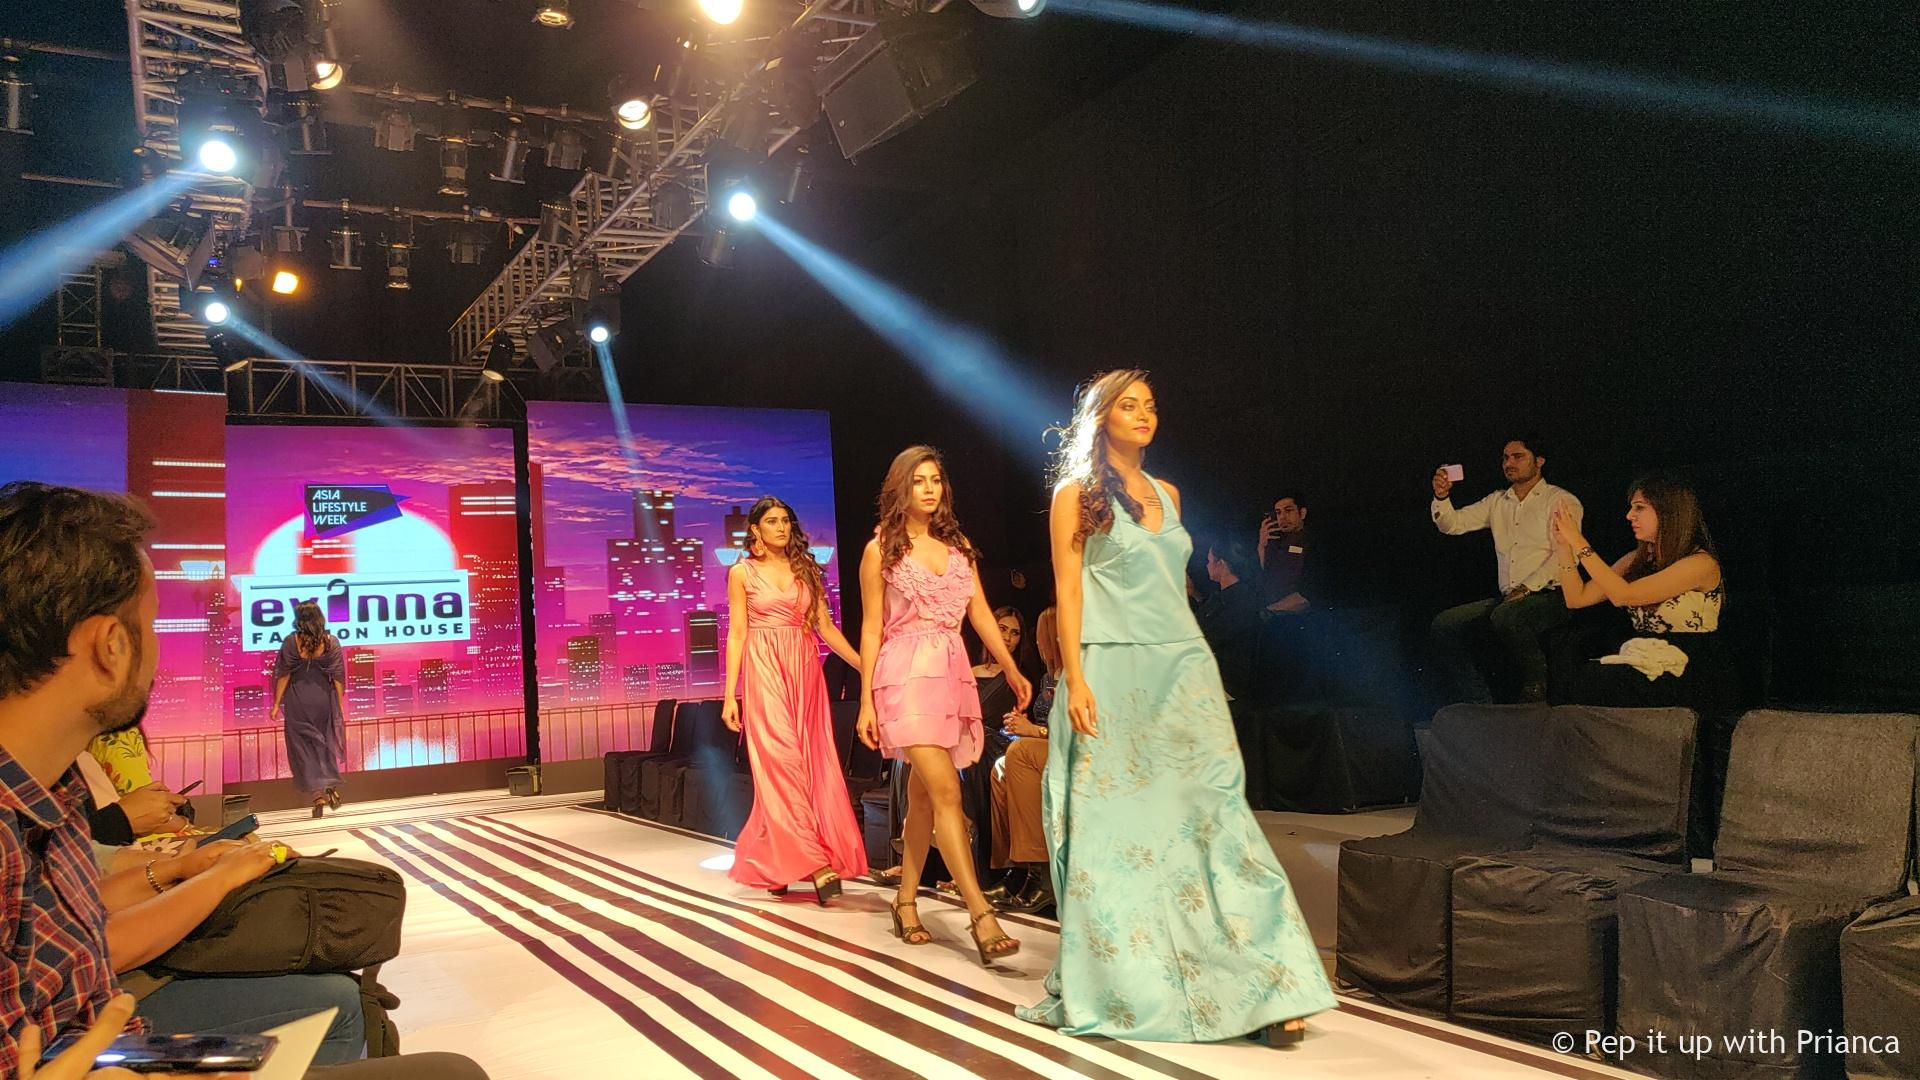 IMG 20190318 220320 - Asia Lifestyle Week Introduces the New Age Fashion & Ethnically Rich Asian Styles